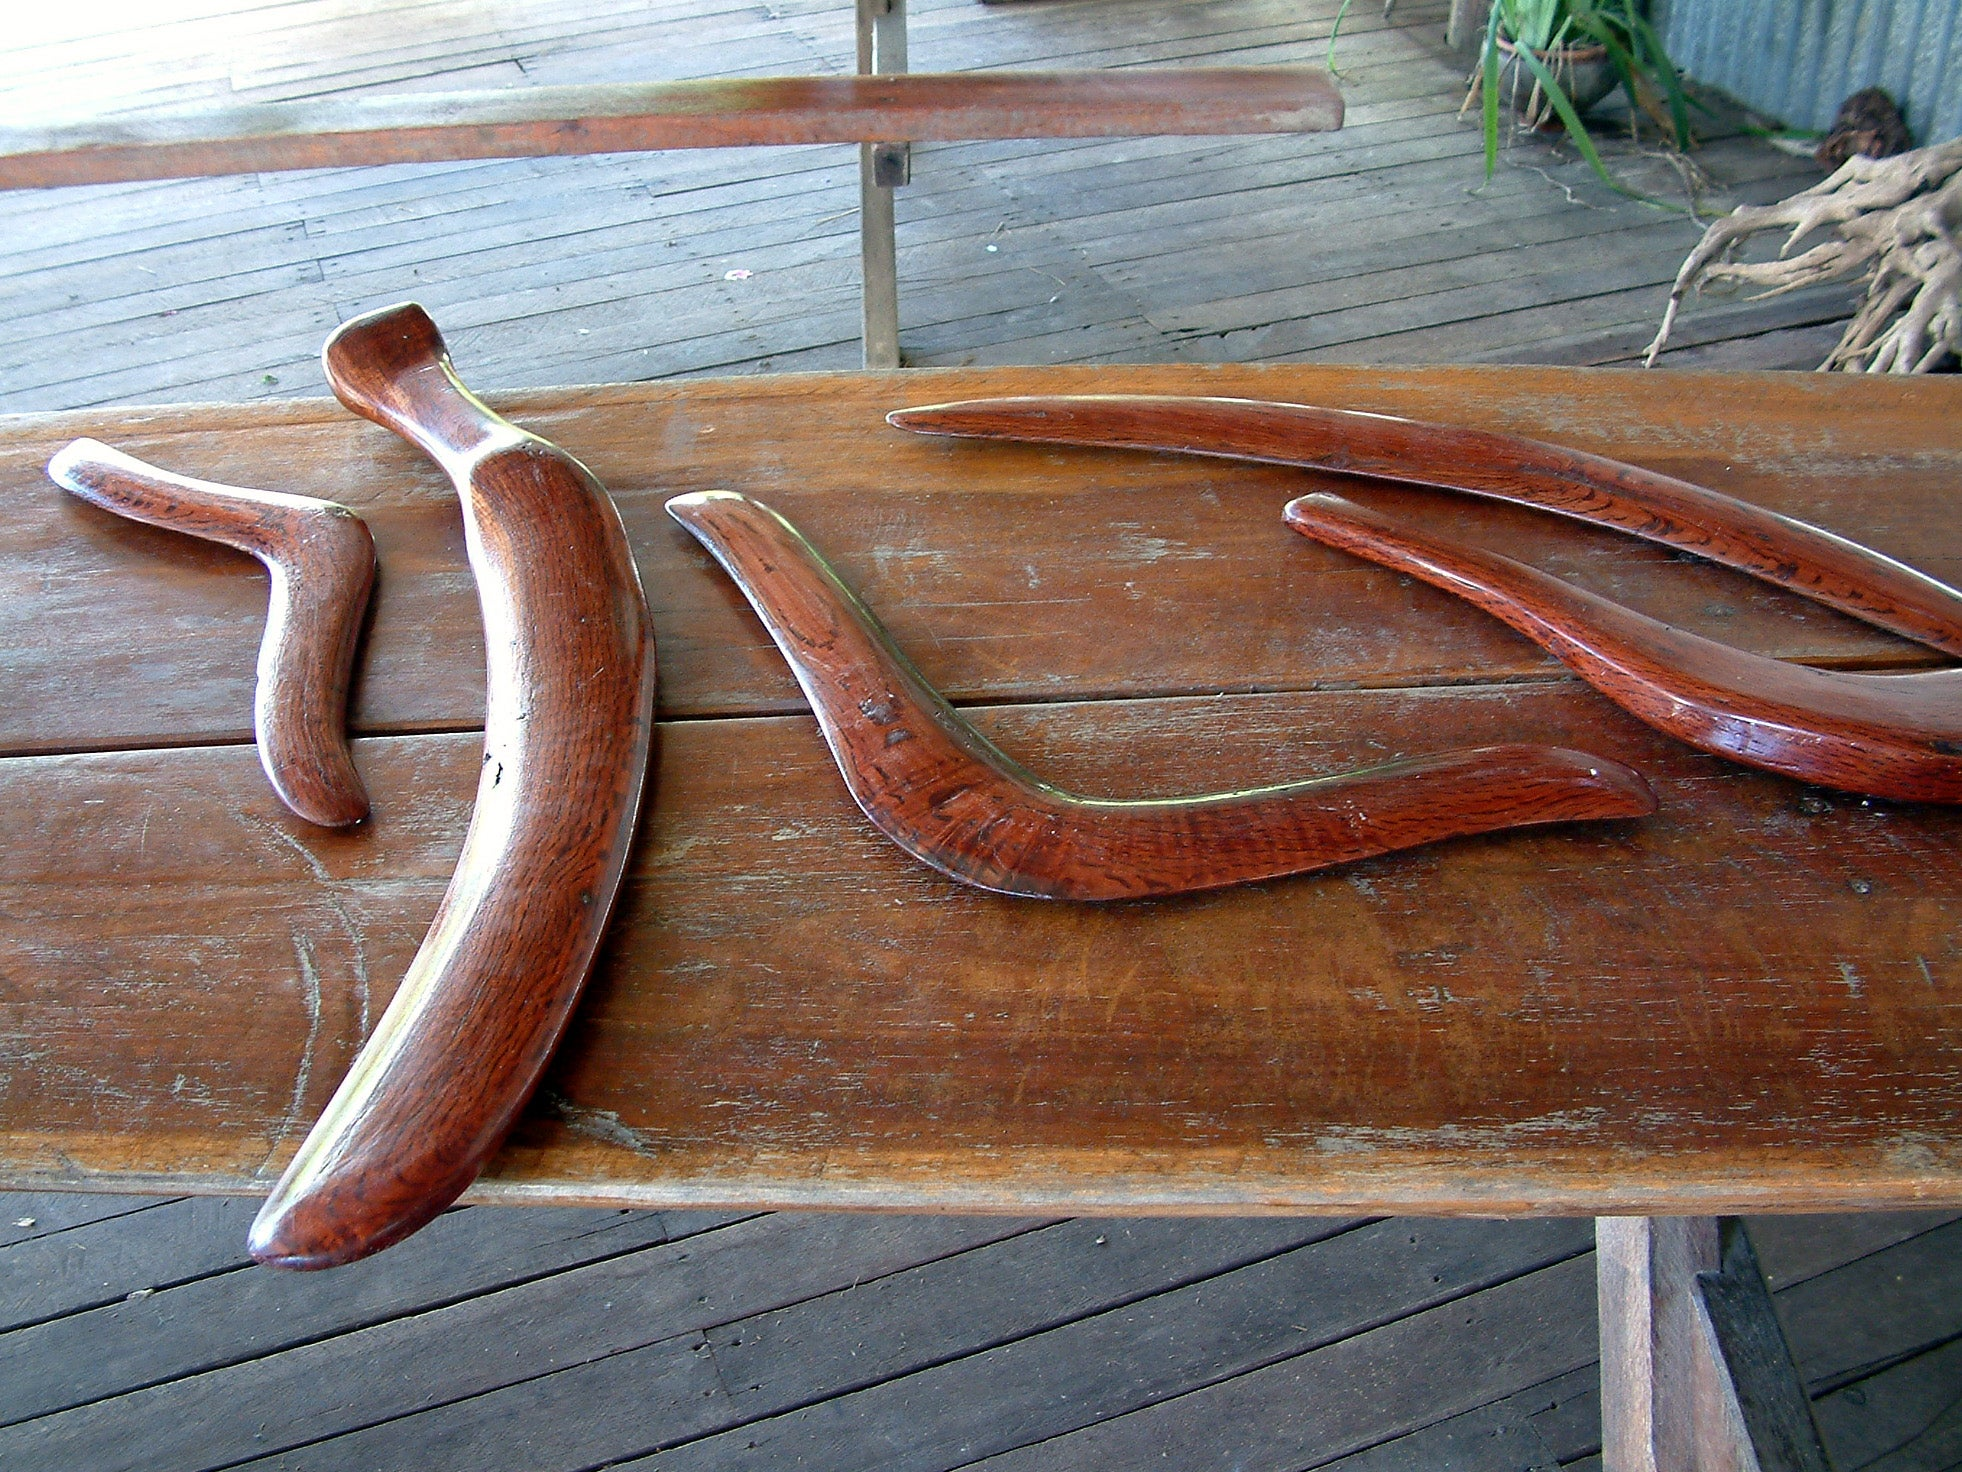 What Makes A Boomerang Come Back?